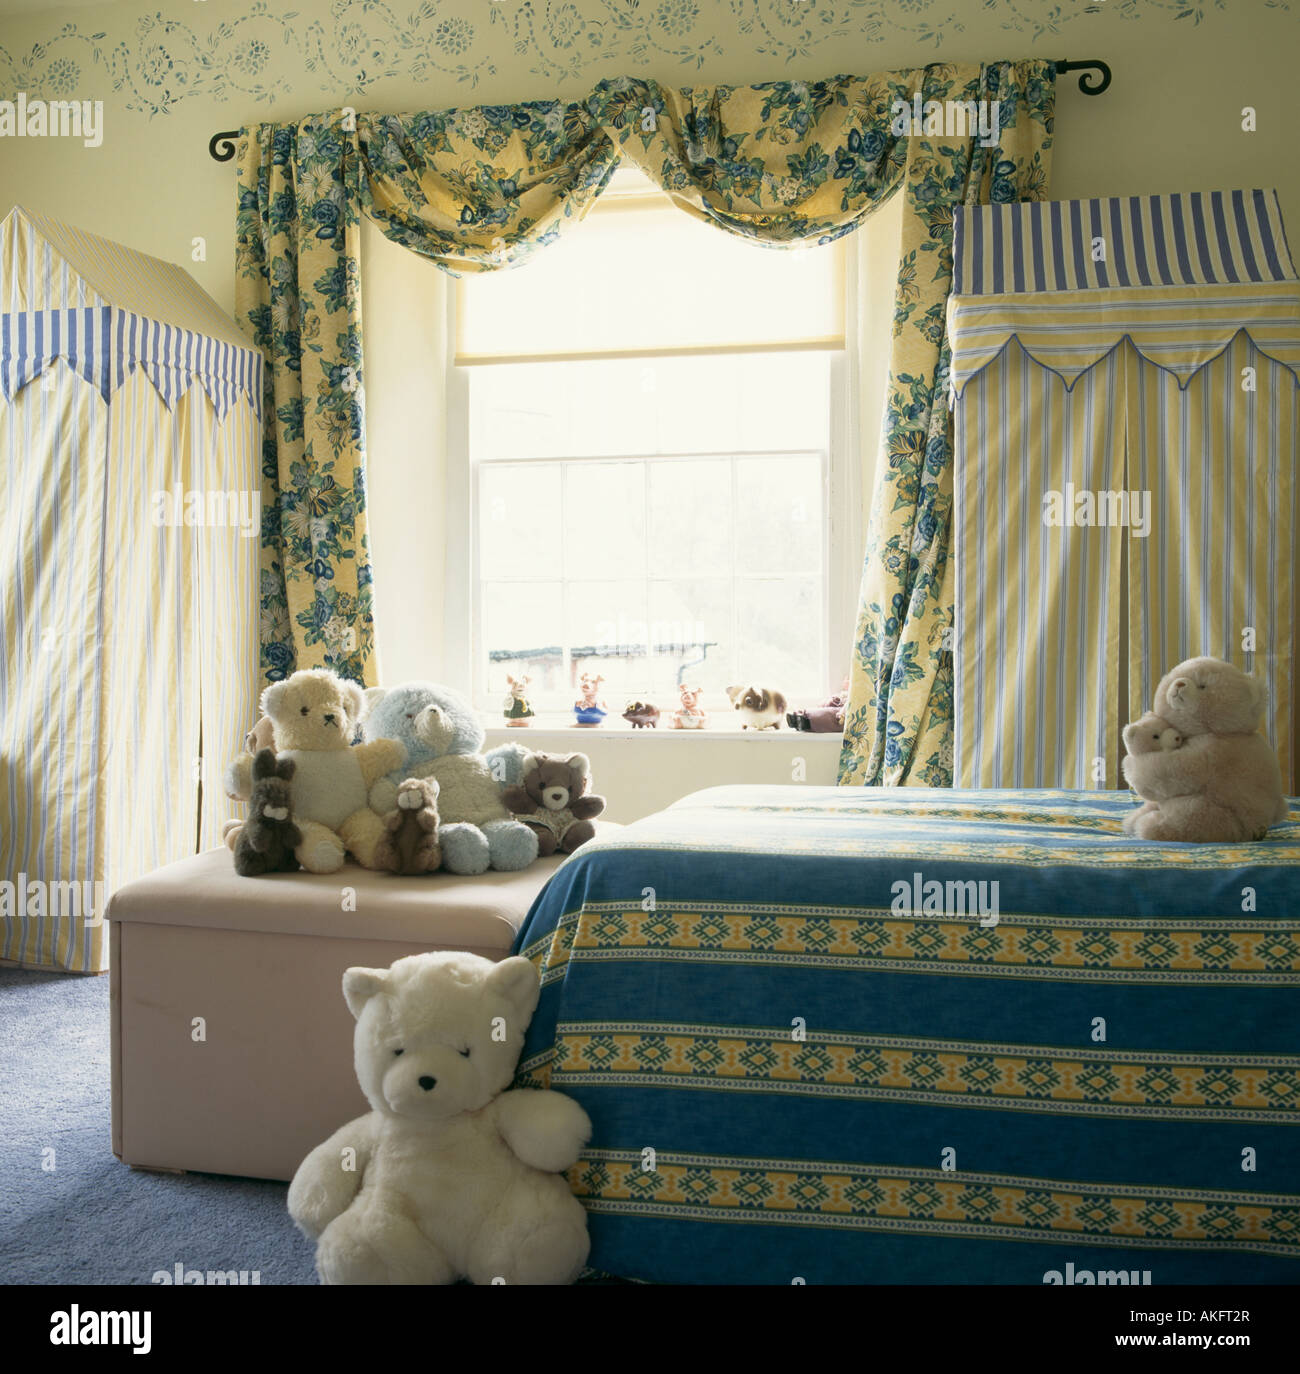 Blue Yellow Floral Curtains And Striped Bed Linen In Childs Bedroom With Teddy Bears